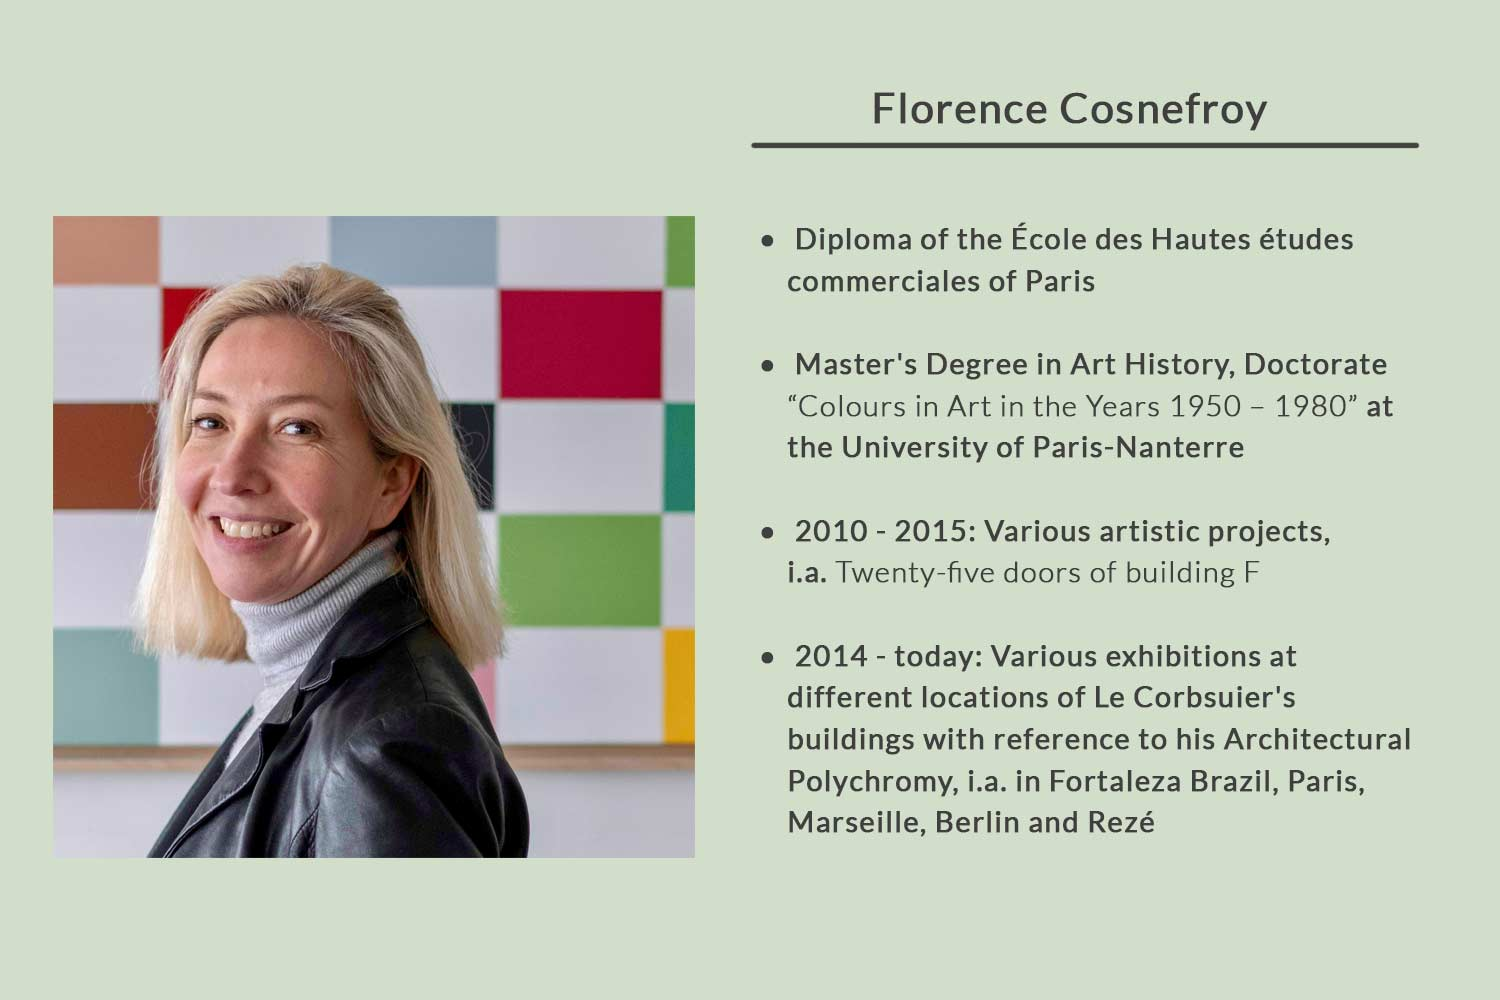 BioBox Florence Cosnefroy